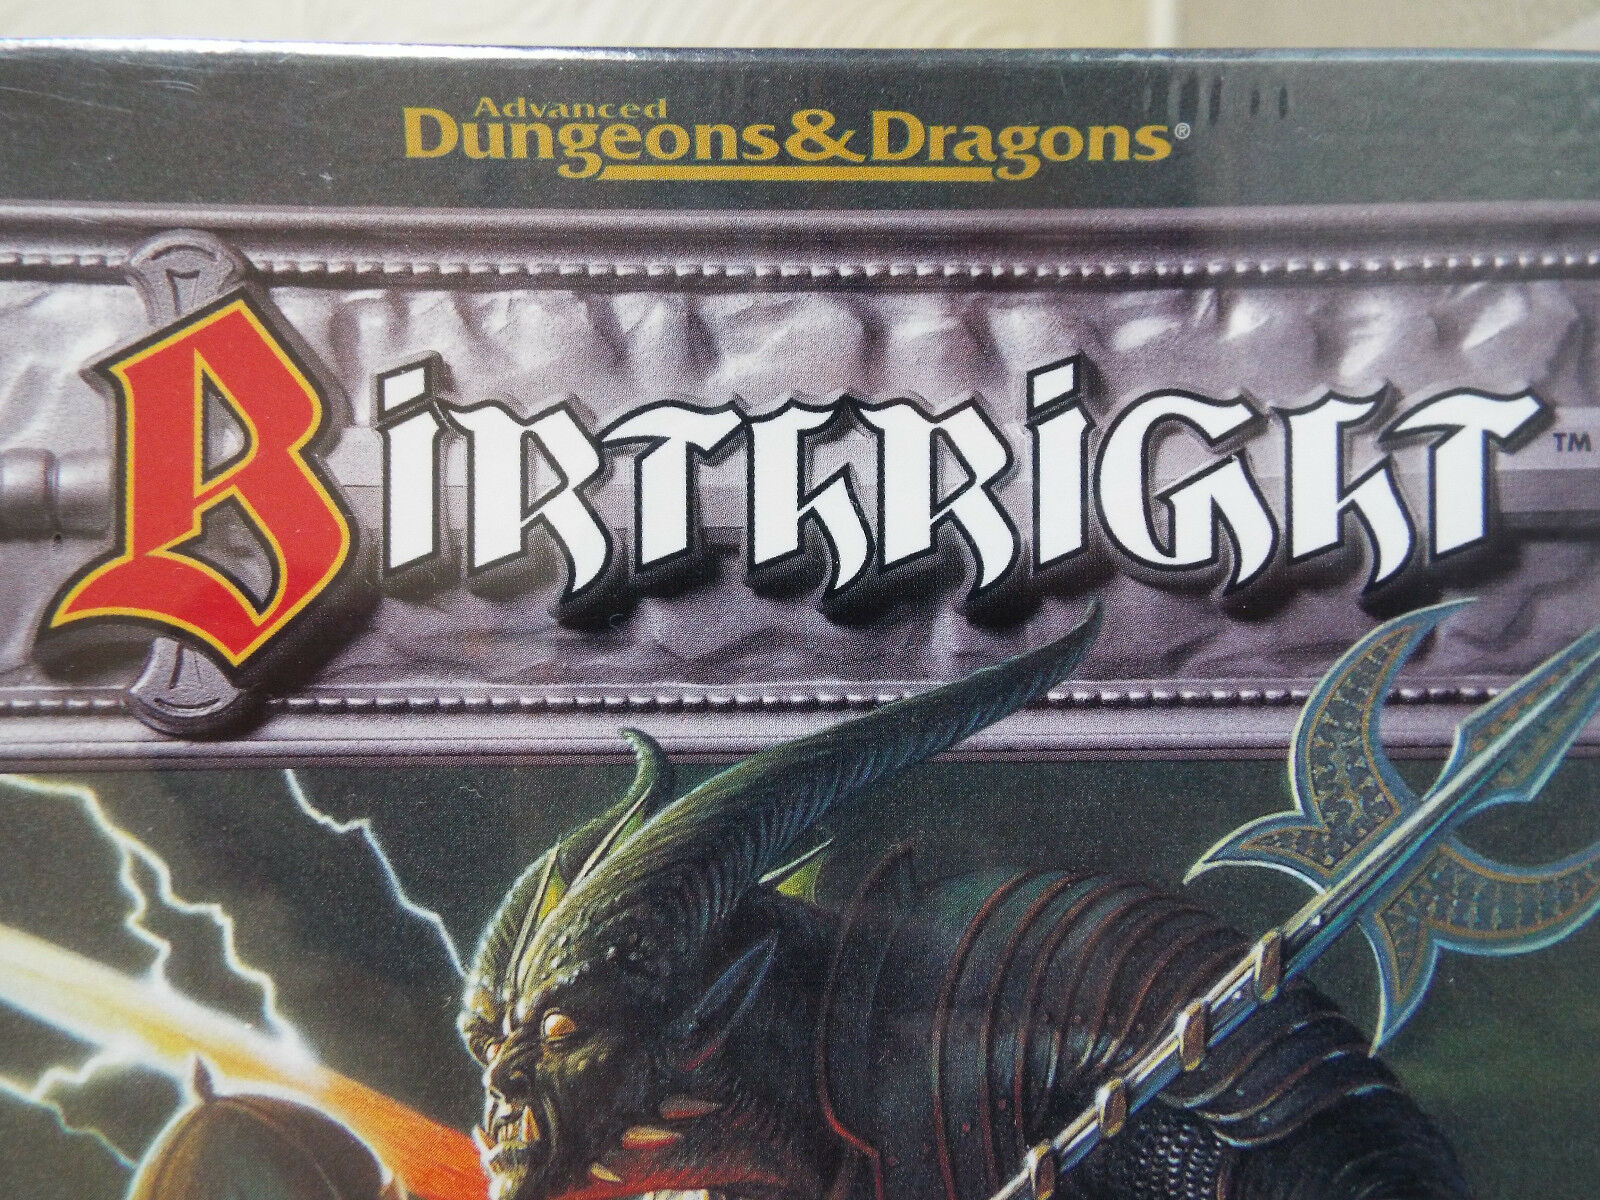 Birthright Vintage 90's Advanced Dungeons & Dragons PC Game New and Sealed